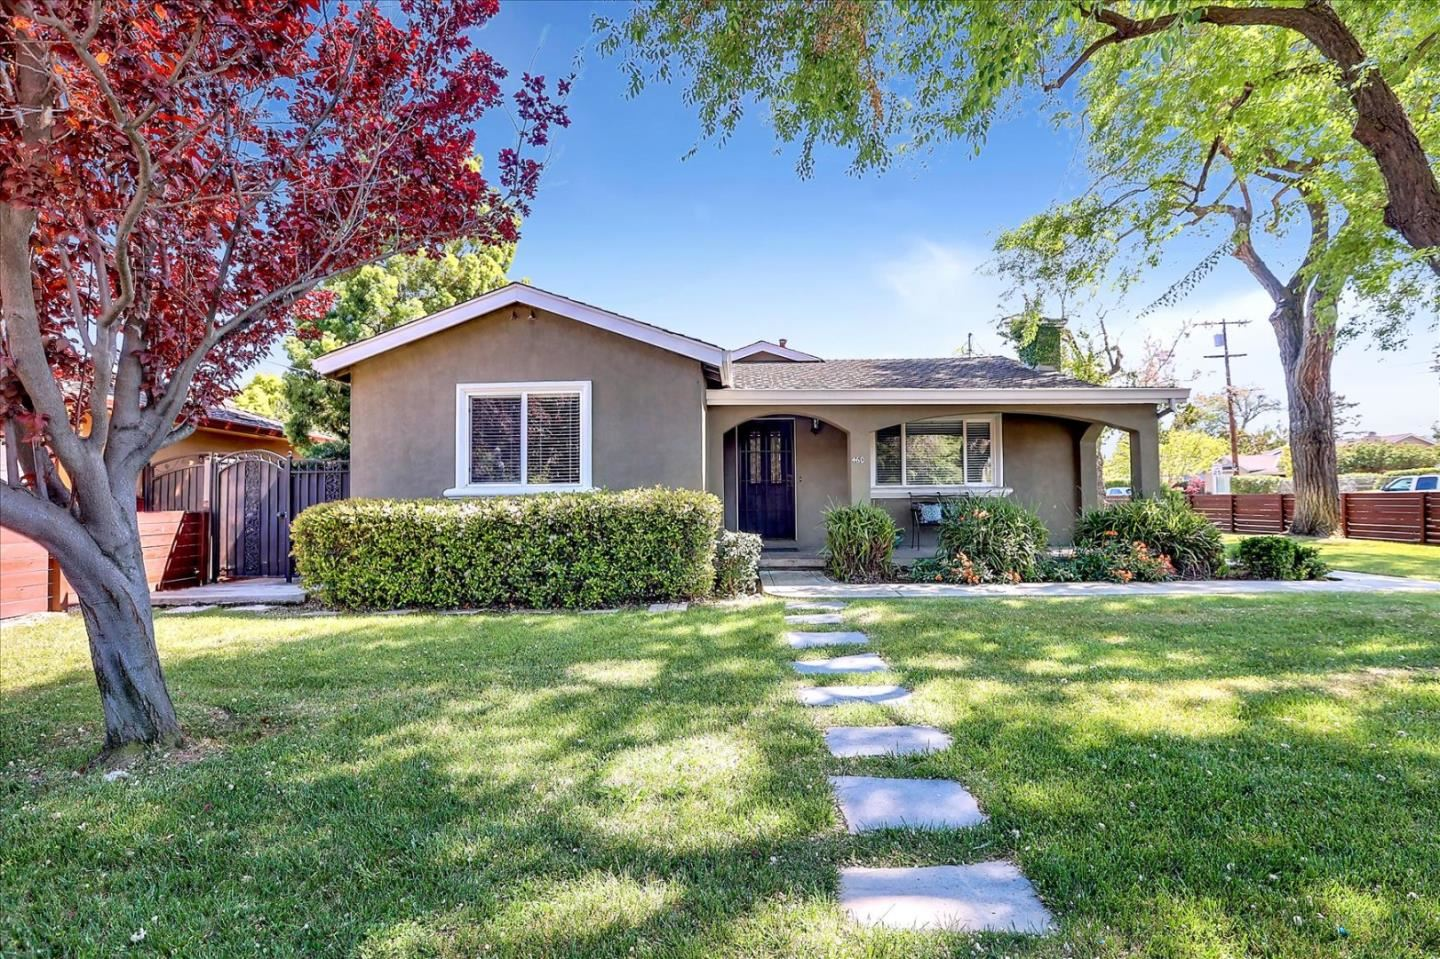 Photo for 460 Curtner Avenue, CAMPBELL, CA 95008 (MLS # ML81840319)